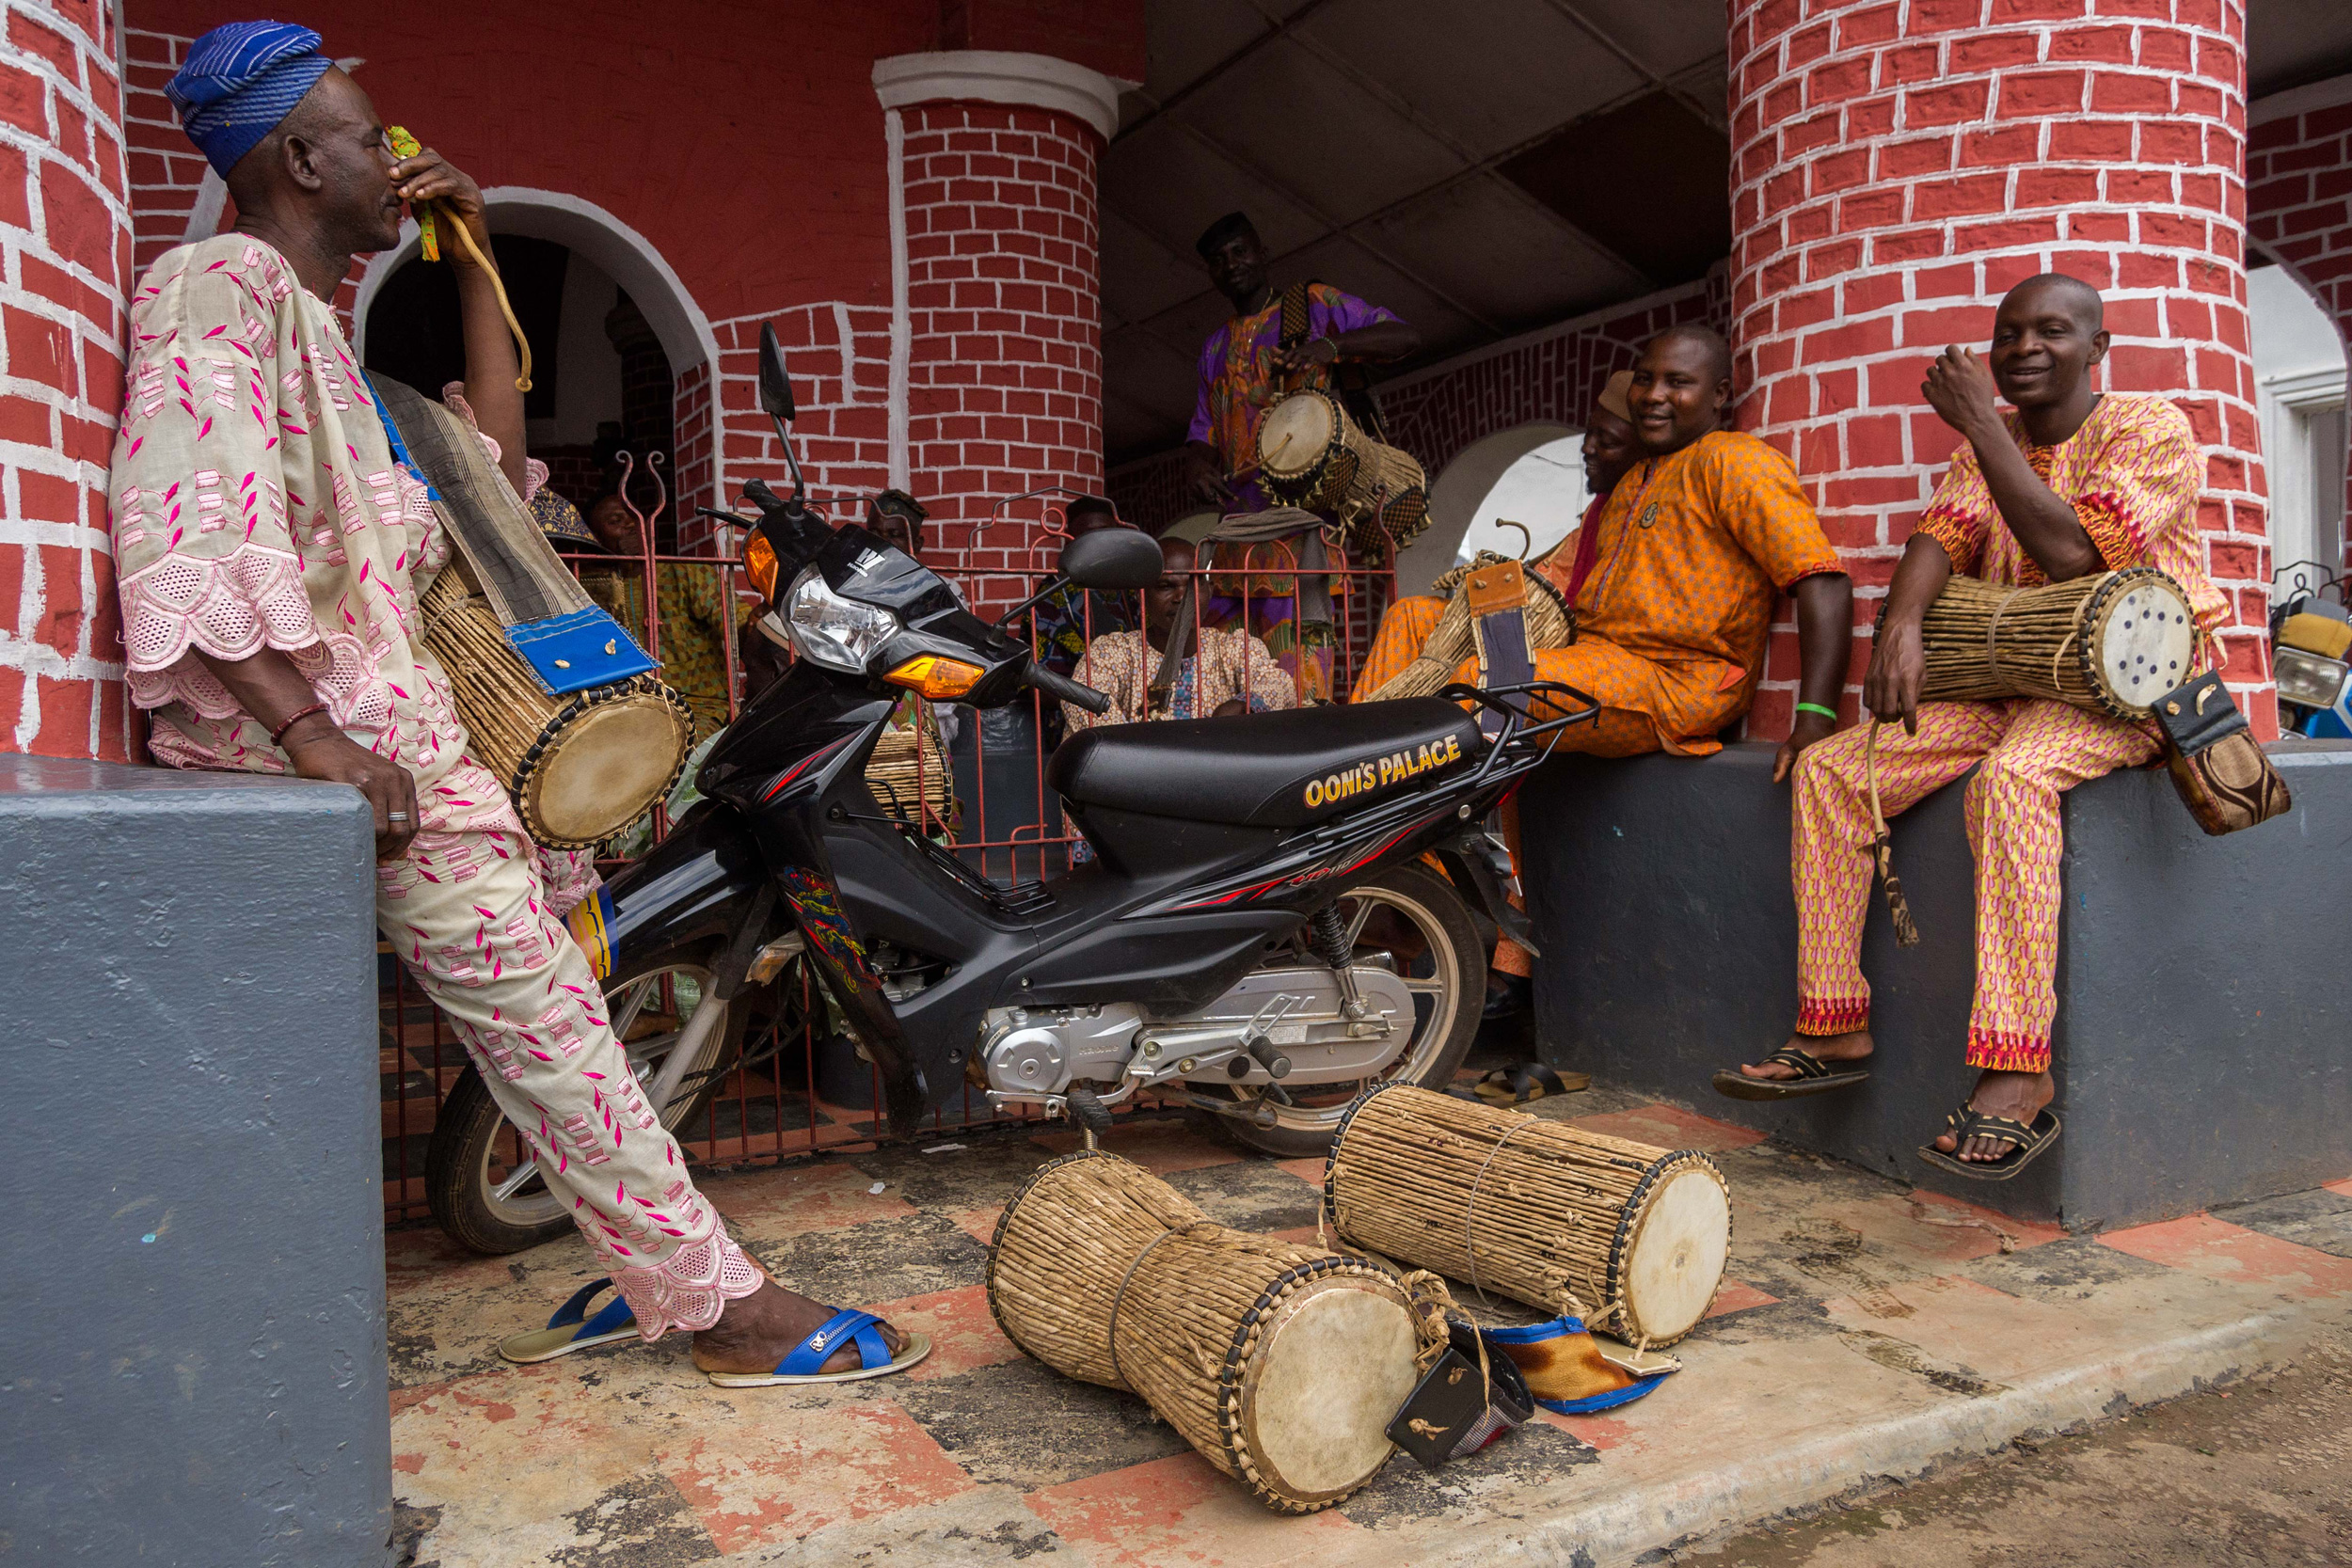 Dùndún-drummers at the Ọọ̀ni's palace in Ilé-Ifẹ̀. This tension drum mimicks the three melodic tones of the Yorùbá language and thus is called a 'talking drum', like the bàtá drum that is also known in the Cuban Yorùbá diaspora. Photo  Wikimedia Commons / Dotun55 / CC BY-SA 4.0